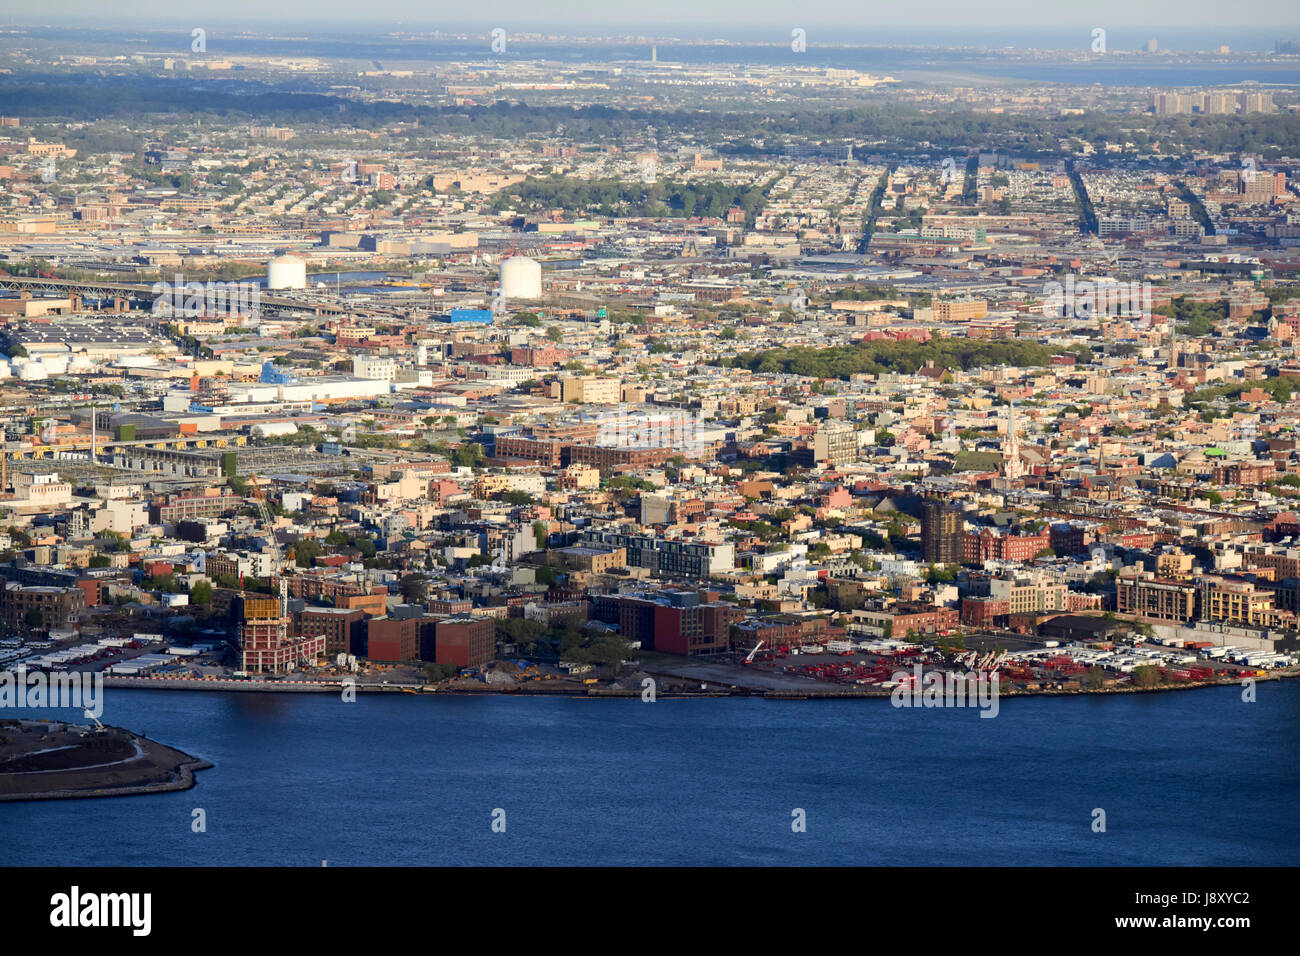 aerial view of greenpoint brooklyn New York City USA - Stock Image